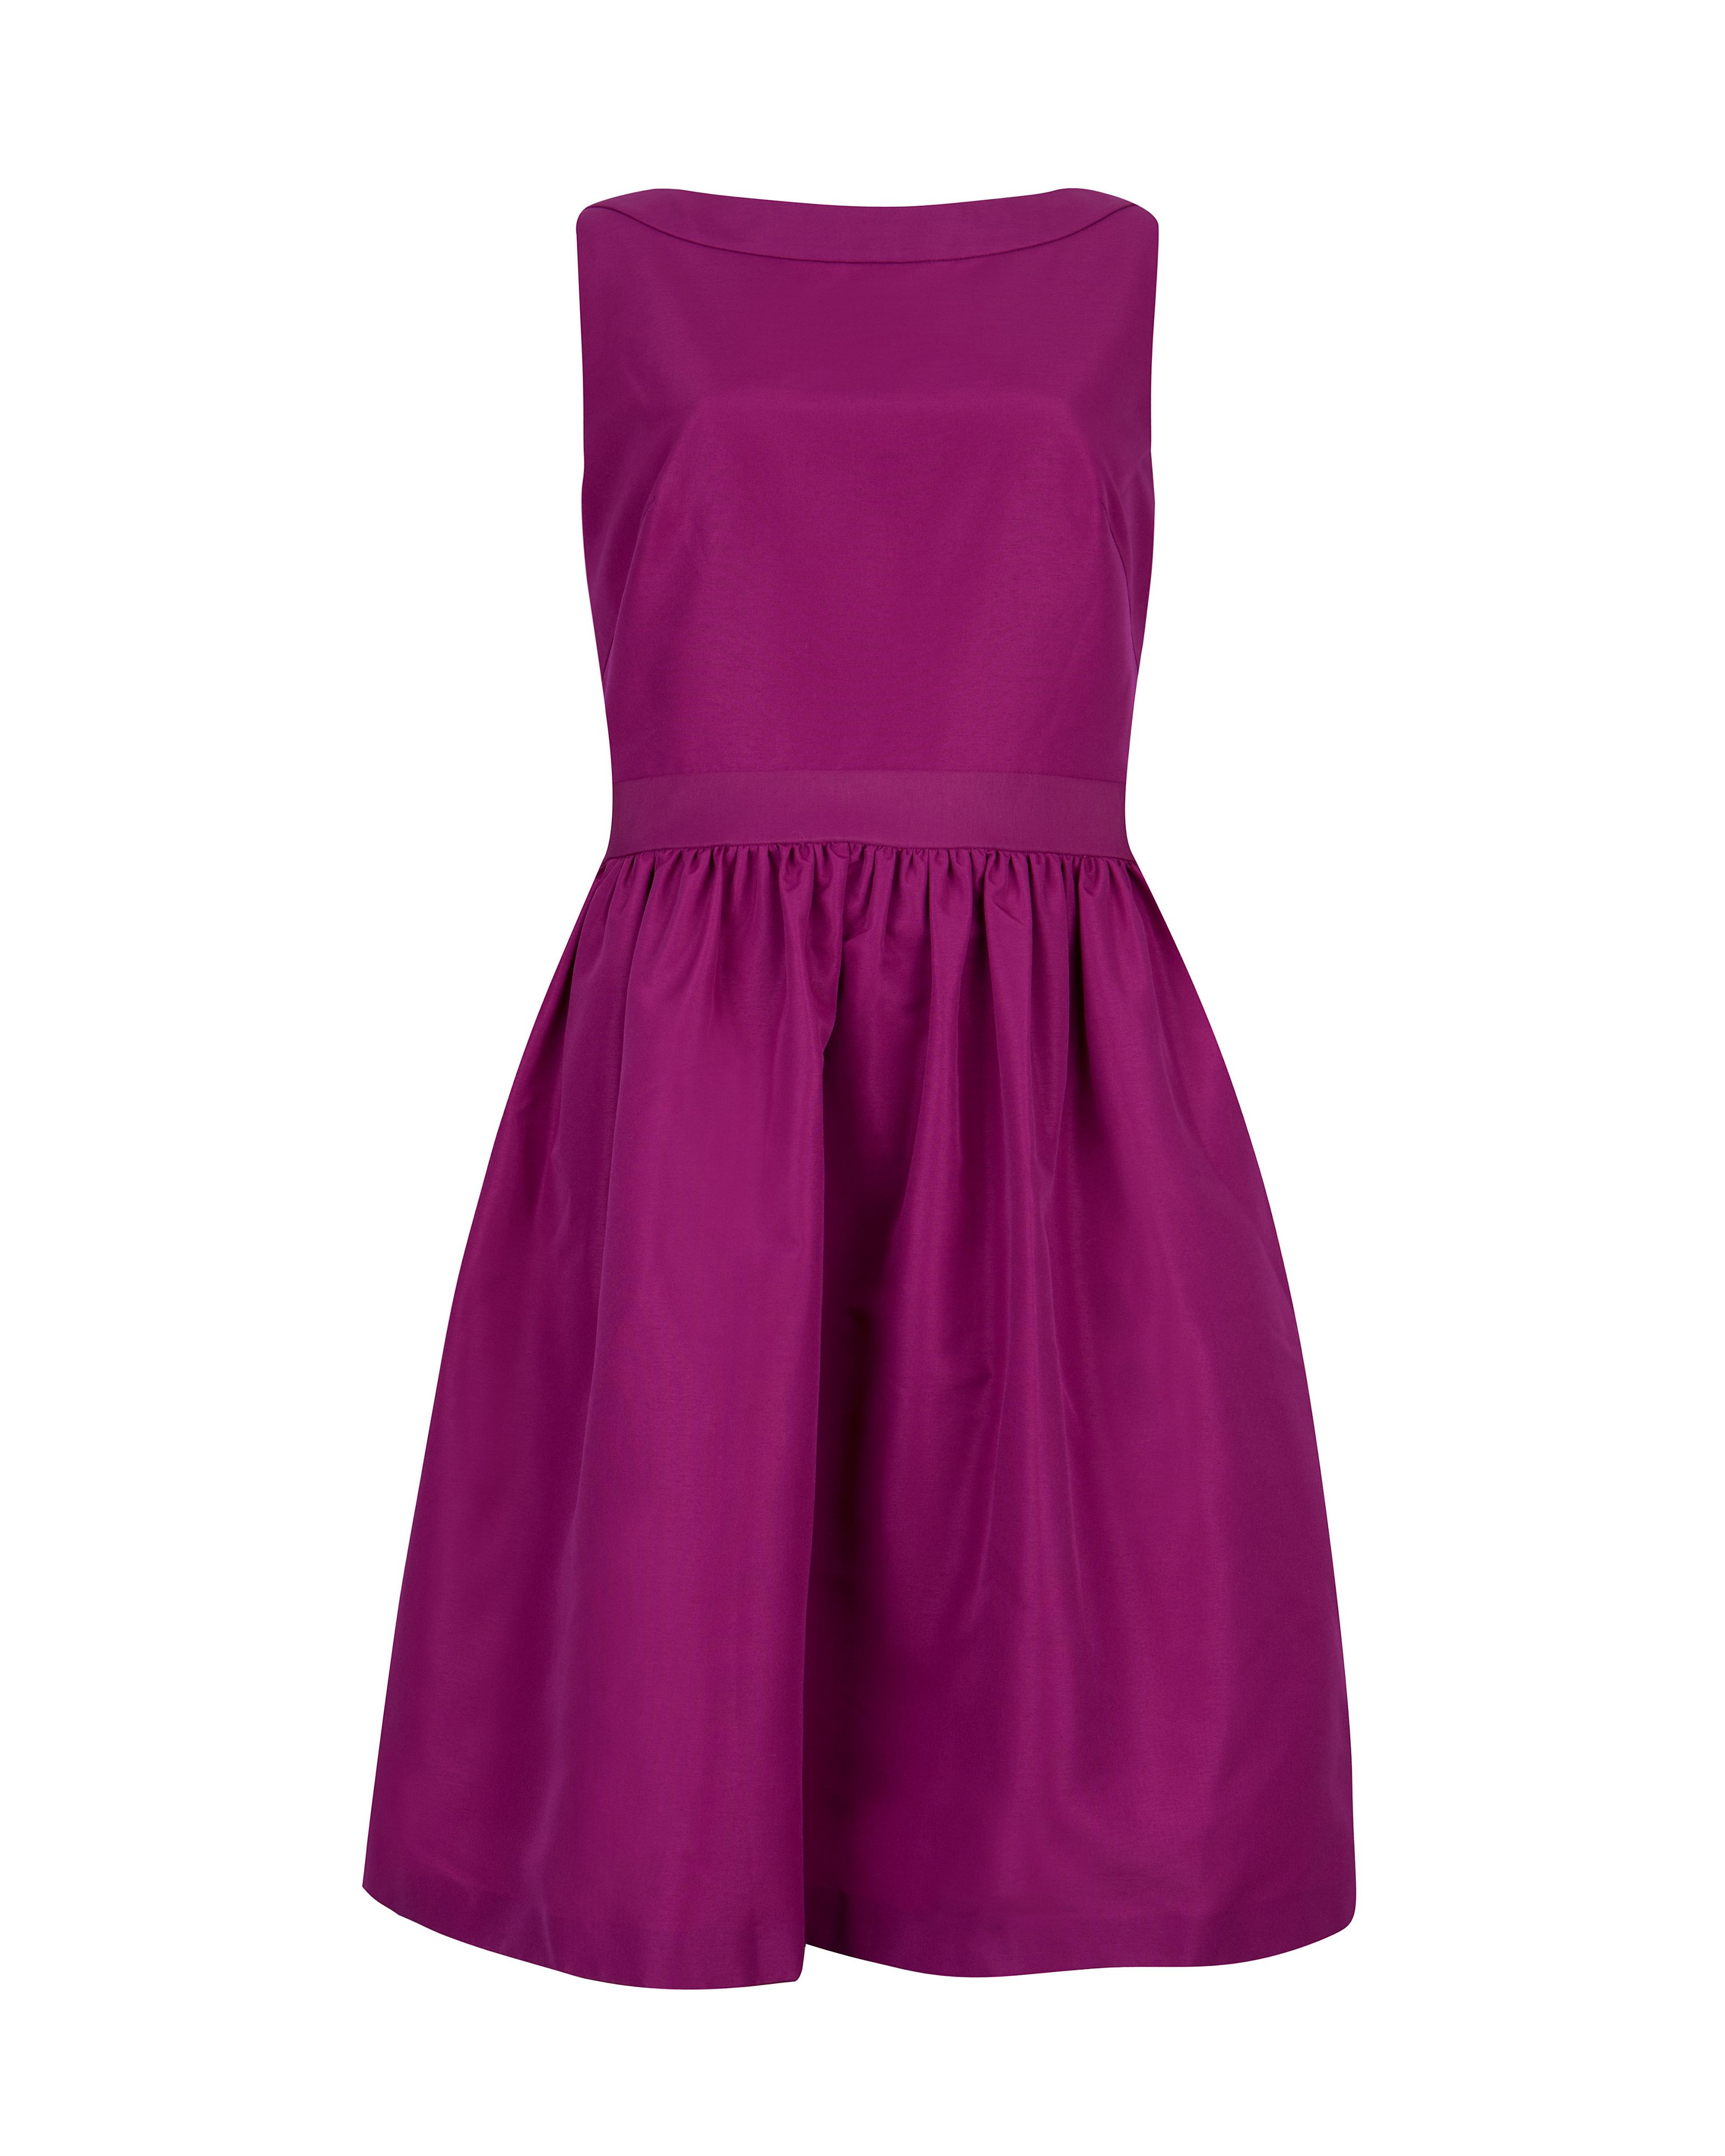 Juletee Bow detail dress